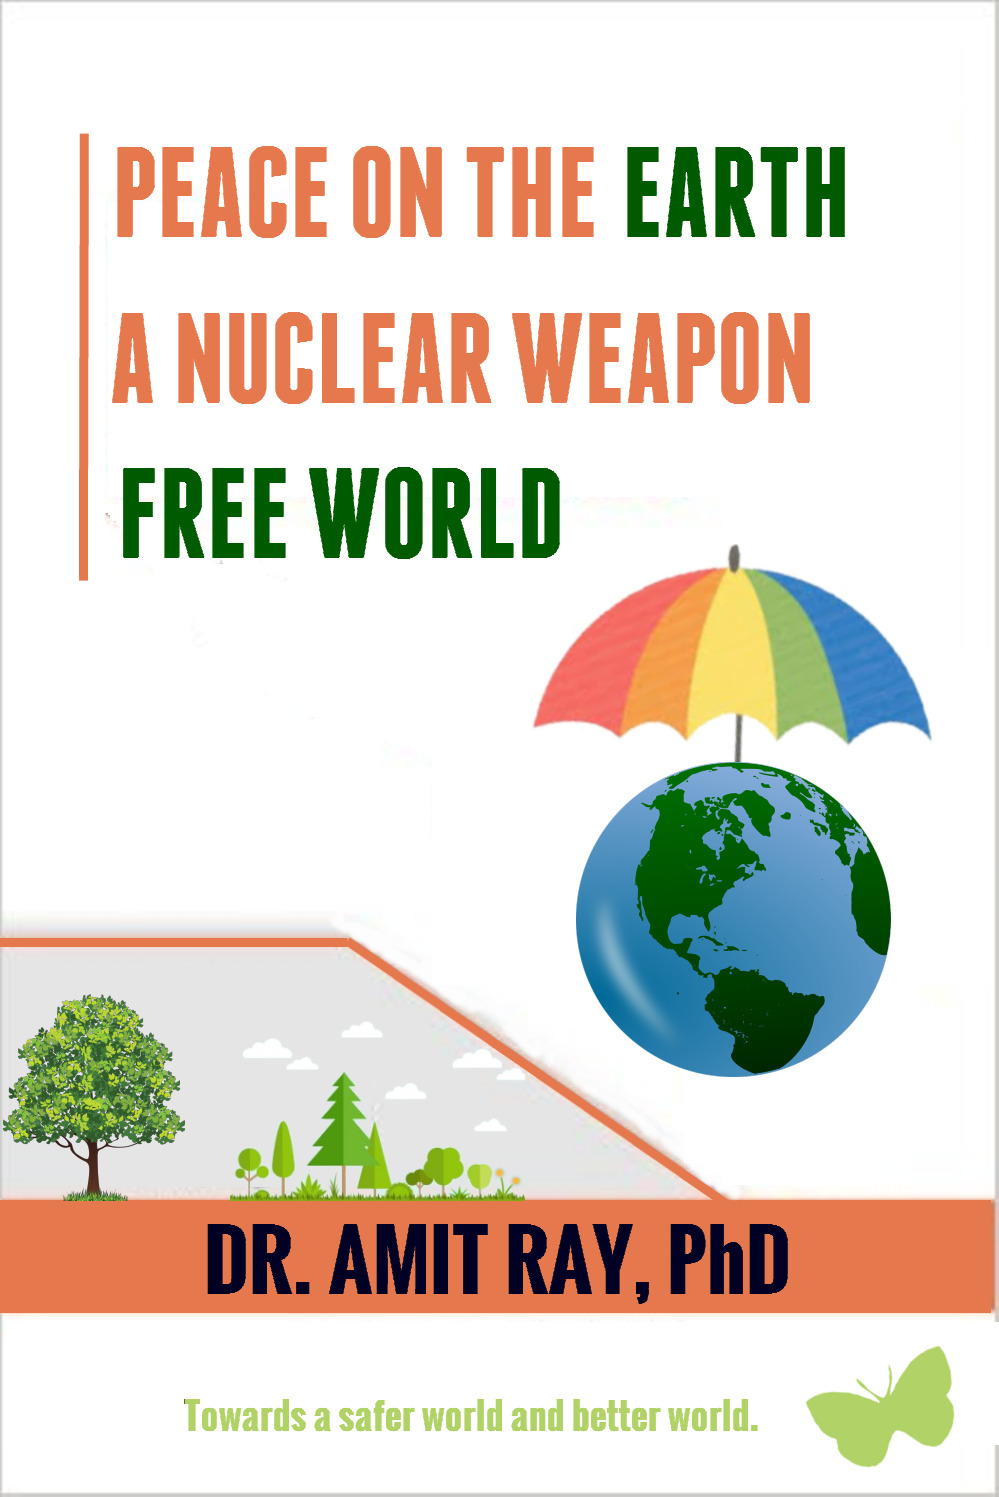 Nuclear Weapons Free World Peace on the Earth